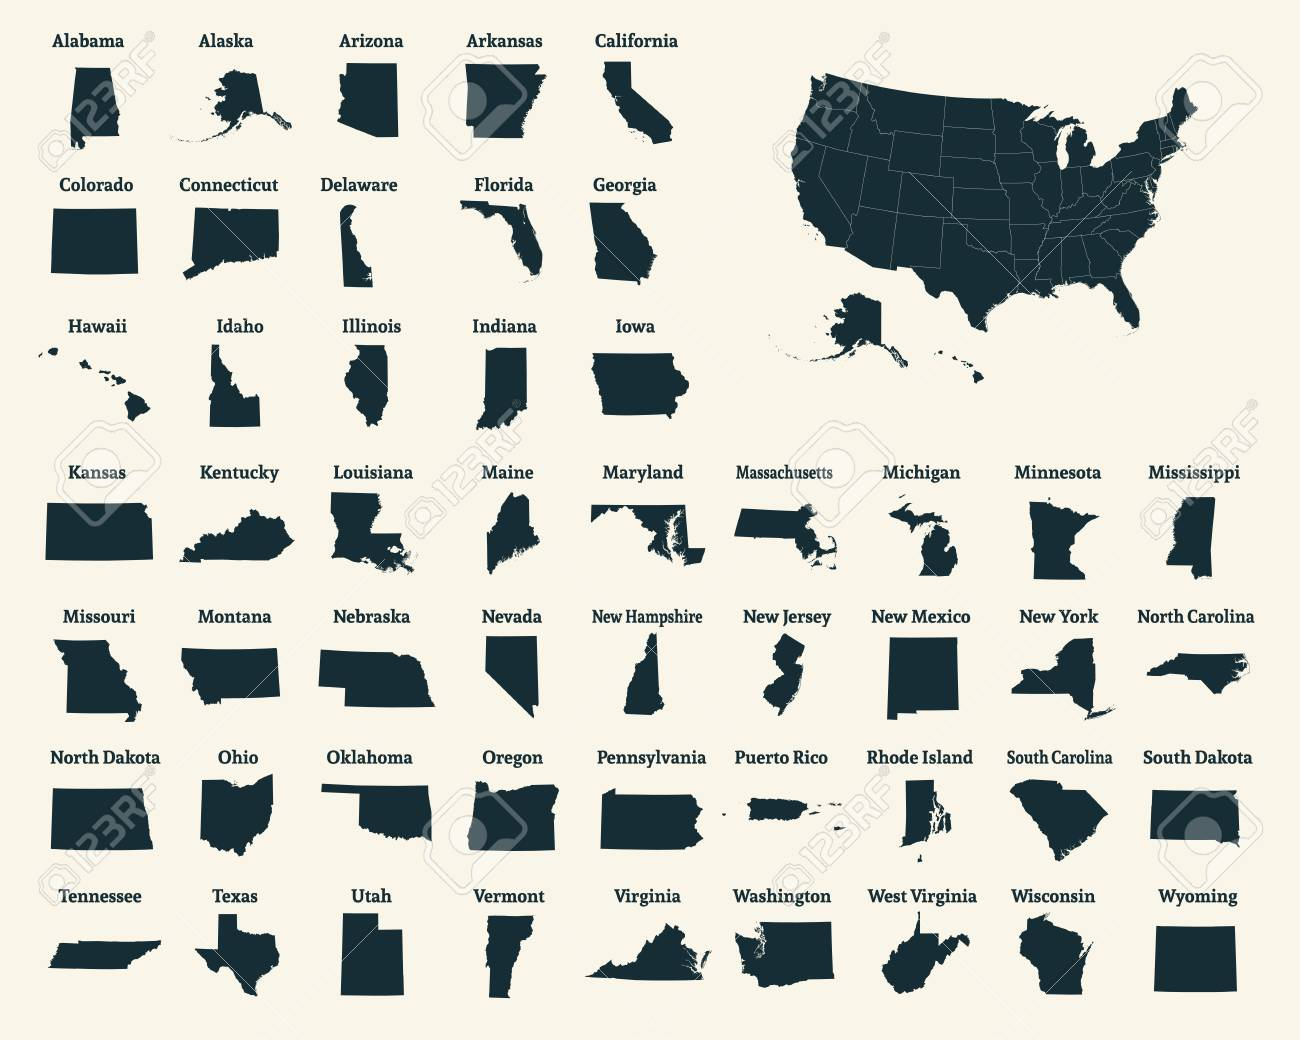 Outline Map Of The United States Of America 50 States Of The - Us-map-50-states